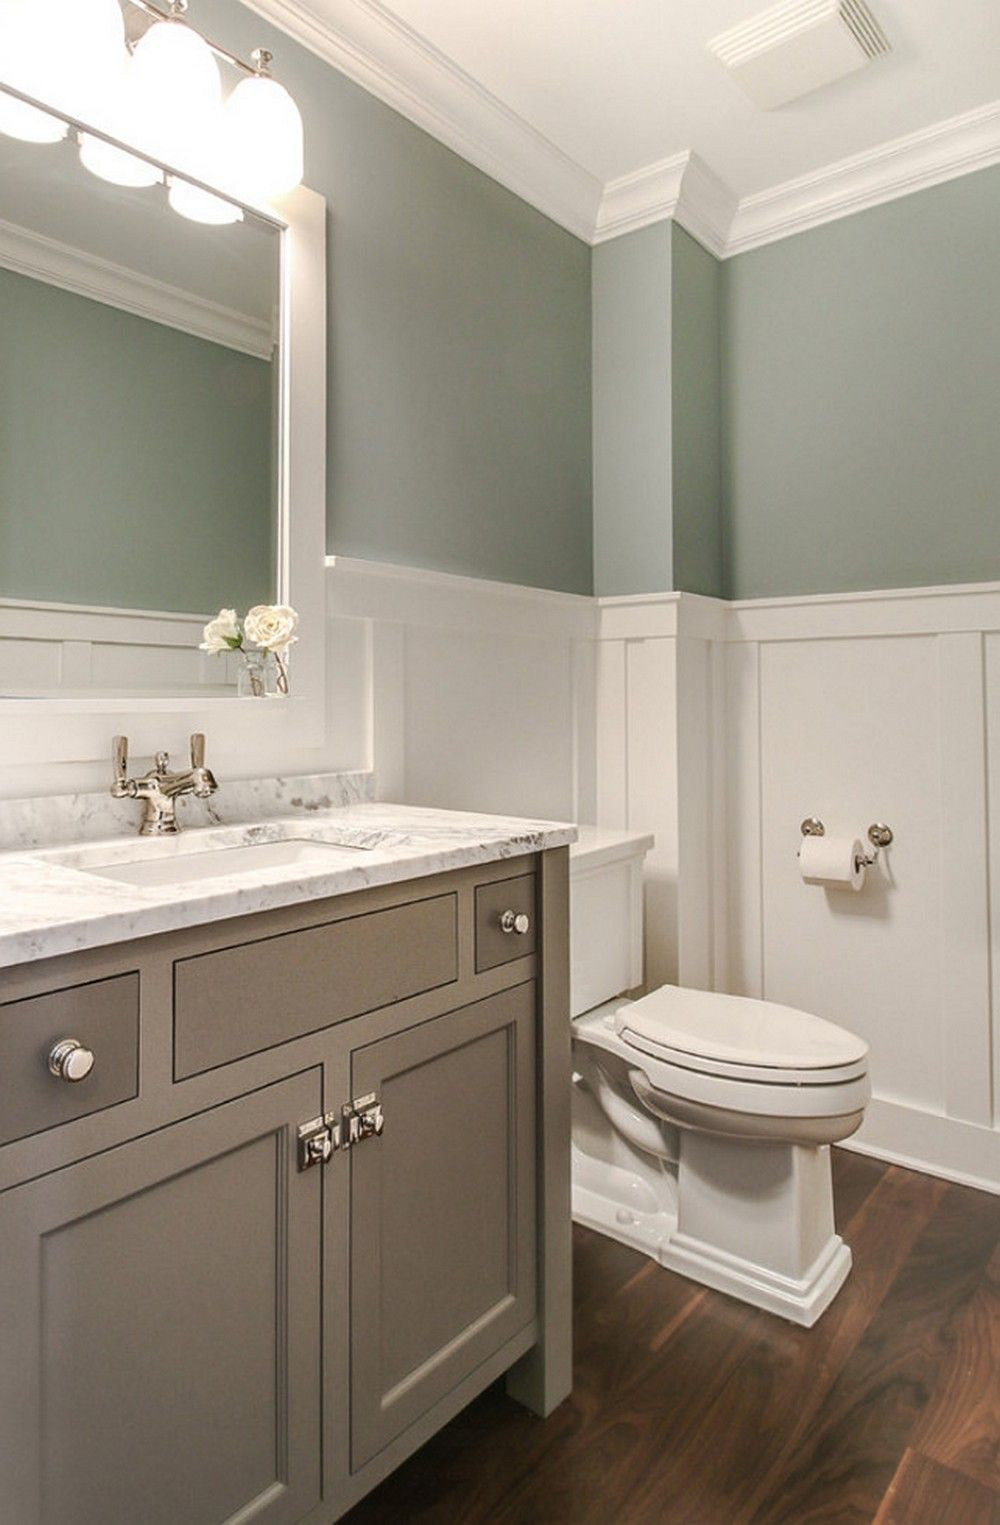 32774b4547c4ab098cf93f566c3e0ba0 Painted Wainscoting Ideas Kitchens on painted chairs kitchen, painted wood kitchen, painted cabinets kitchen, painted paneling kitchen, painted beadboard kitchen, painted countertops kitchen, painted plaster kitchen, painted floor kitchen, painted ceilings kitchen, painted brick kitchen, painted accent walls kitchen, painted tiles kitchen, painted tin backsplash kitchen, painted furniture kitchen, painted window kitchen,